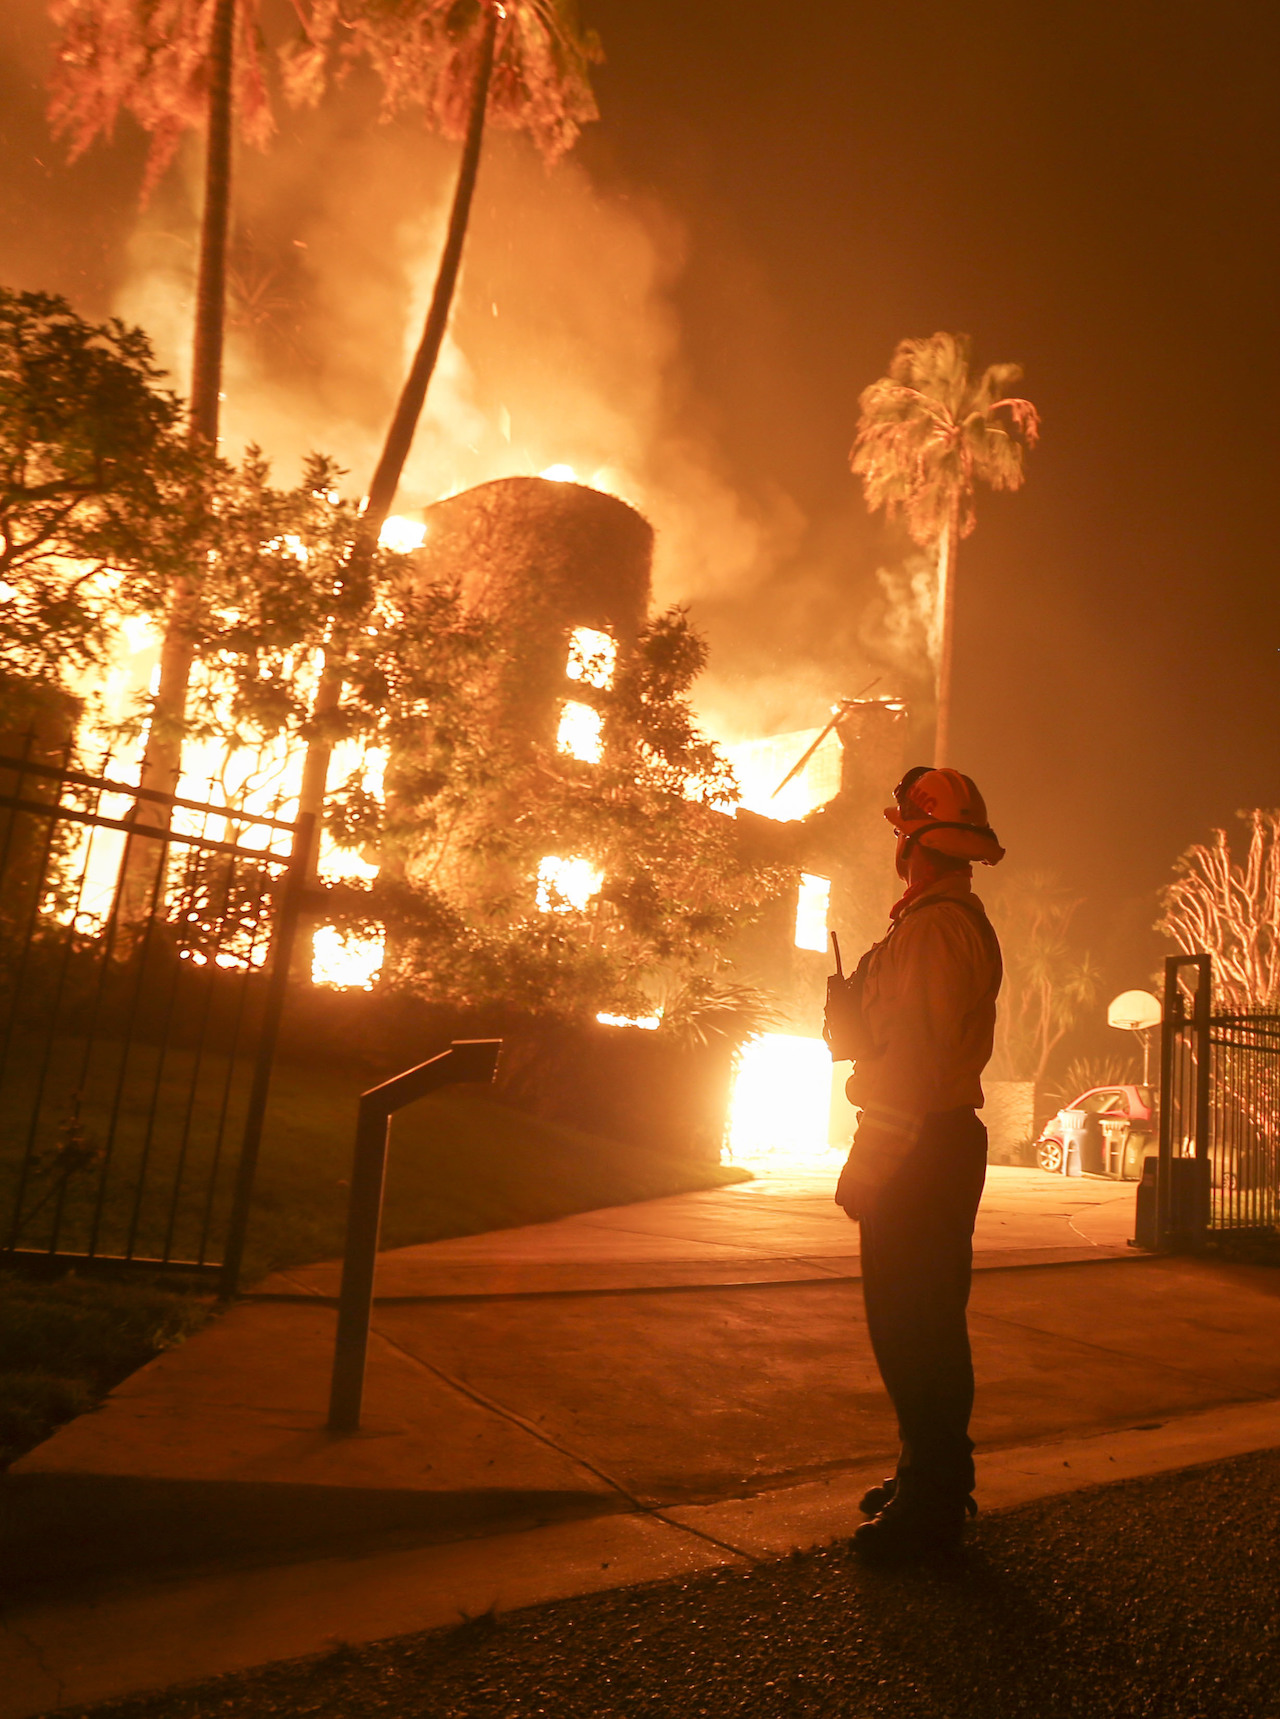 <div class='meta'><div class='origin-logo' data-origin='AP'></div><span class='caption-text' data-credit='AP Photo/Ringo H.W. Chiu'>A firefighter keeps watch as the Woolsey Fire burns a home in Malibu, Calif., Friday, Nov. 9, 2018.</span></div>